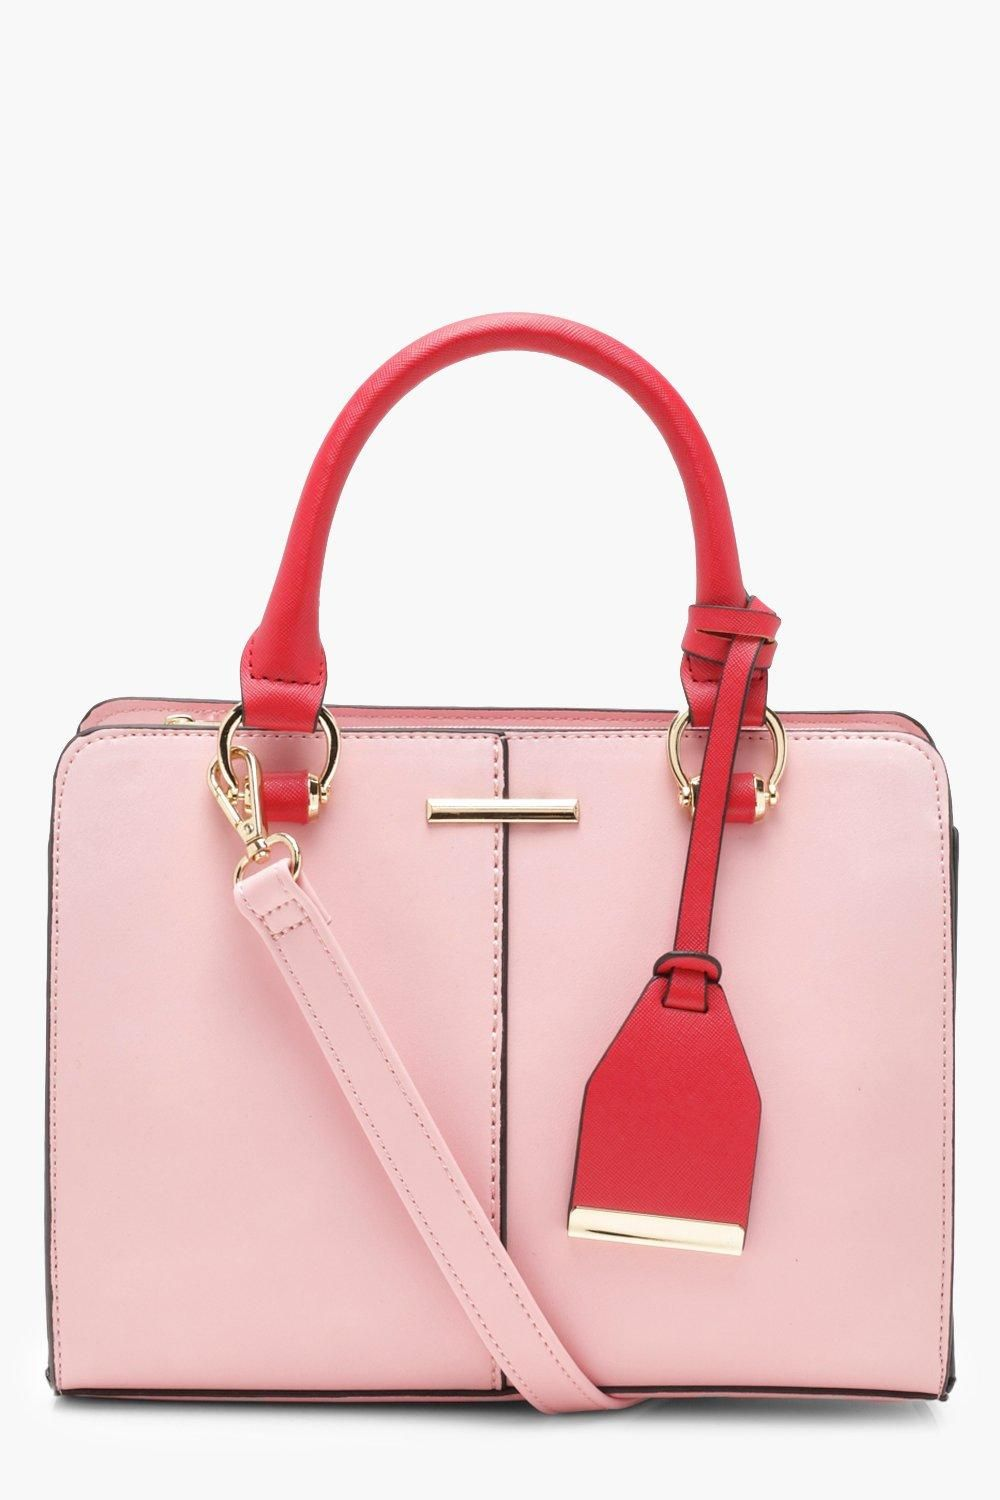 Click Here To Find Out About The Sofia Structured Mini Tote Cross Body Bag From Boohoo Part Of Our Latest New In Accessories Collection Ready